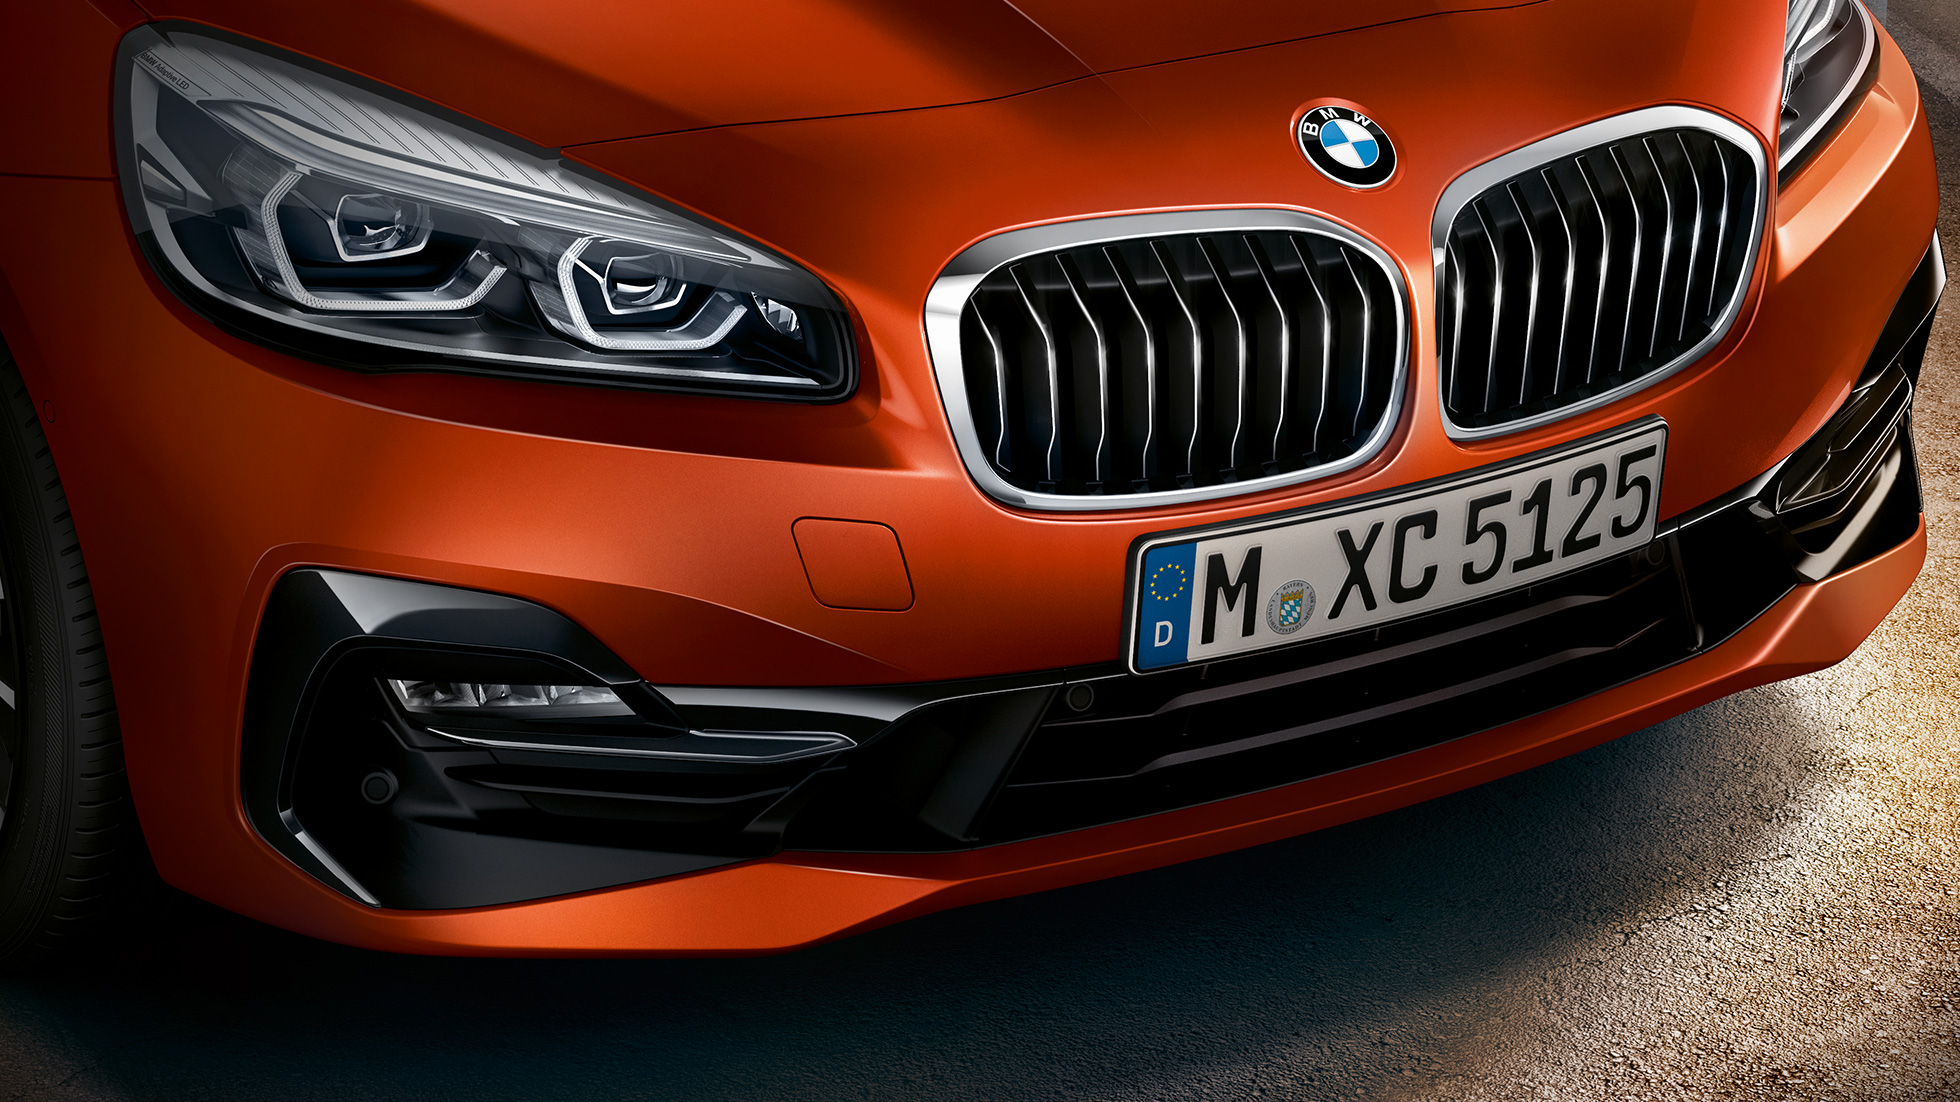 Grill BMW 2-serie Active Tourer F45 Facelift 2018 Sunset Orange metallic næropptak front